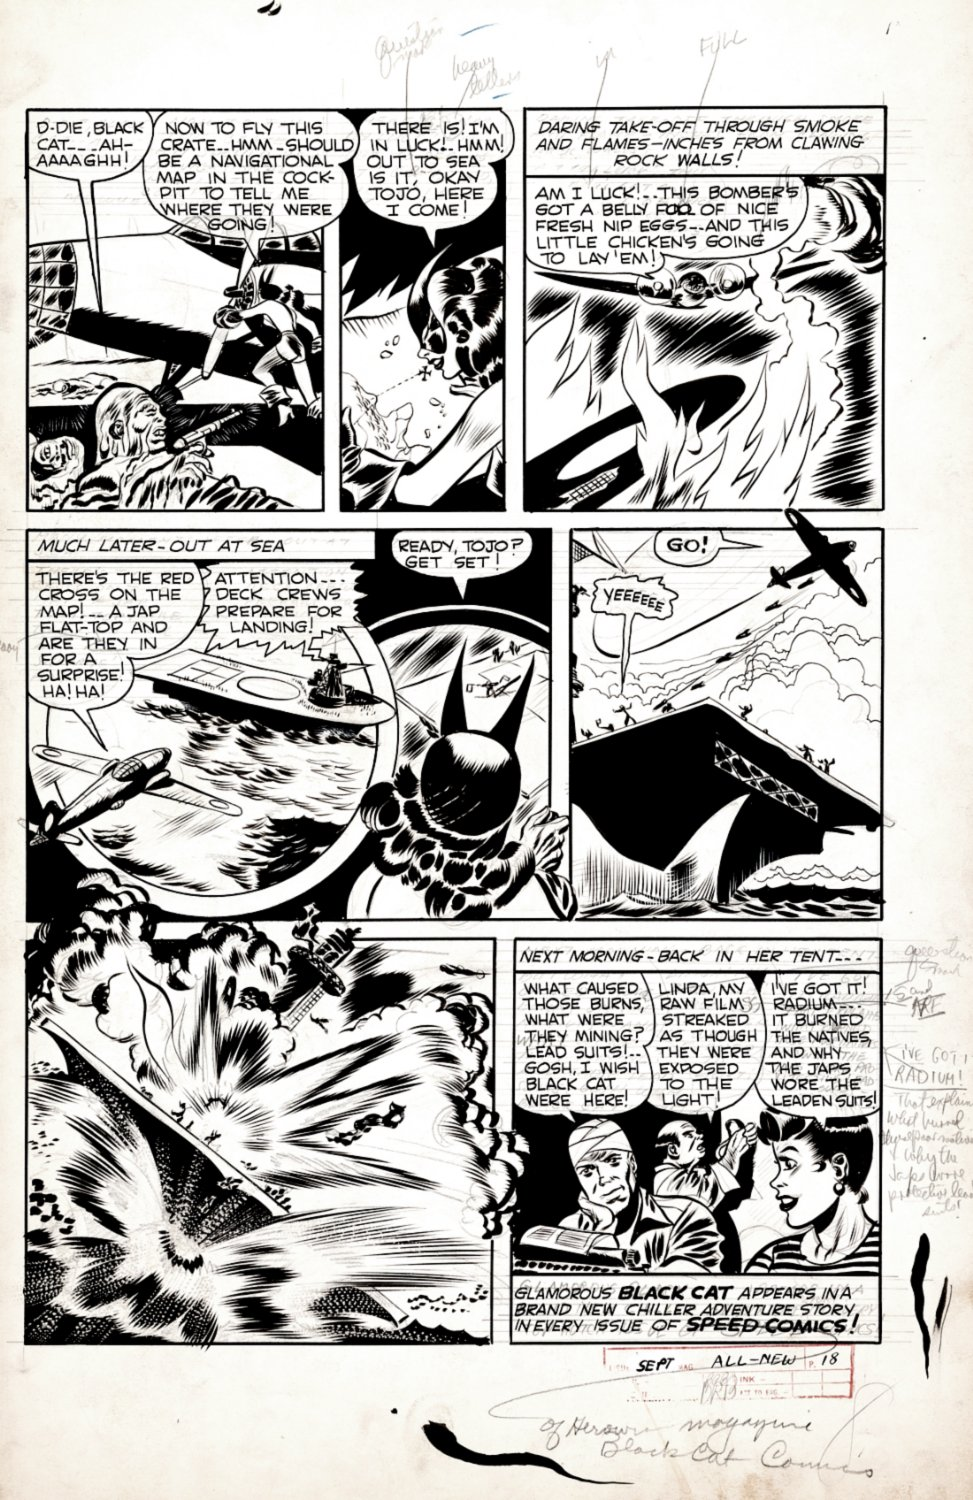 Speed Comics p 8 (BLACK CAT KILLING JAPANESE SOLDIERS DURING WORLD WAR 2!) Early 1940s